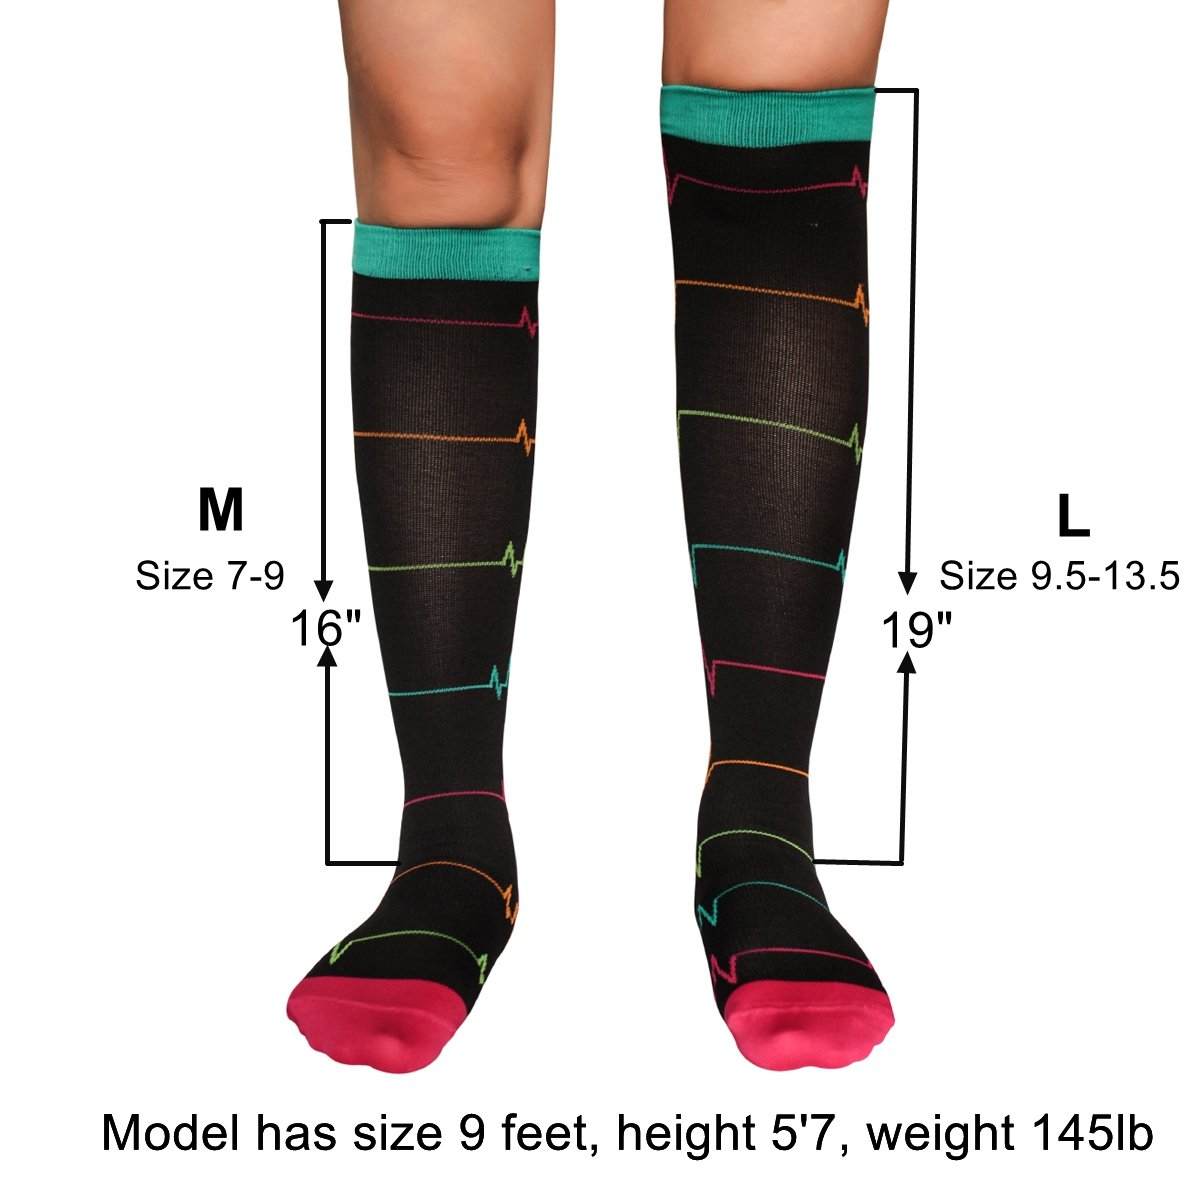 3 Pairs Compression Socks for Nurse(Women)|20-30mmHg Graduated Knee High Stocking |Anti Fatigue & Prevent Swelling in 12h Shift by LEVSOX (Image #3)